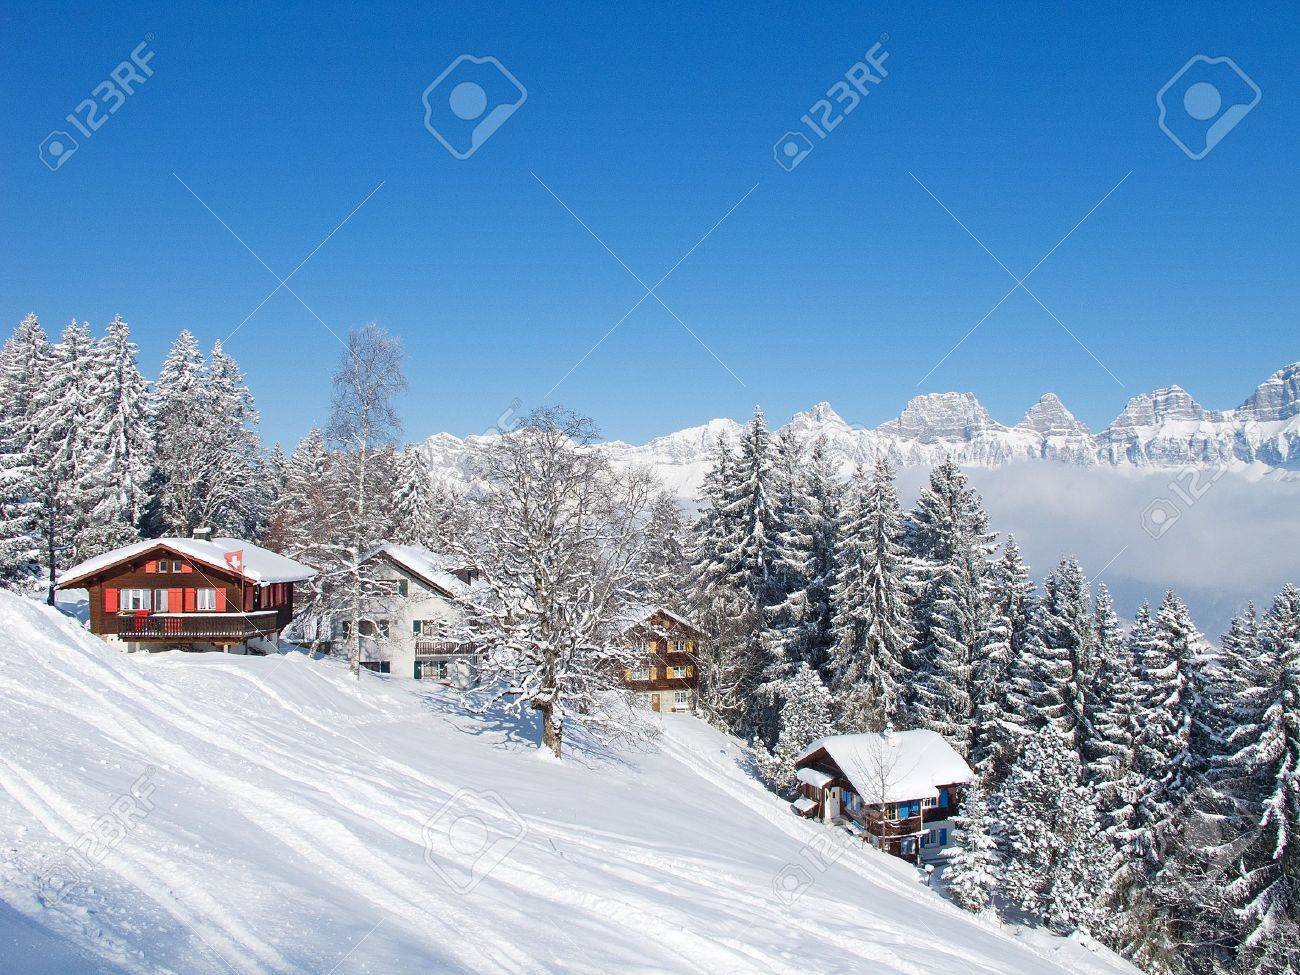 Winter holiday house in swiss alps Stock Photo - 8697386